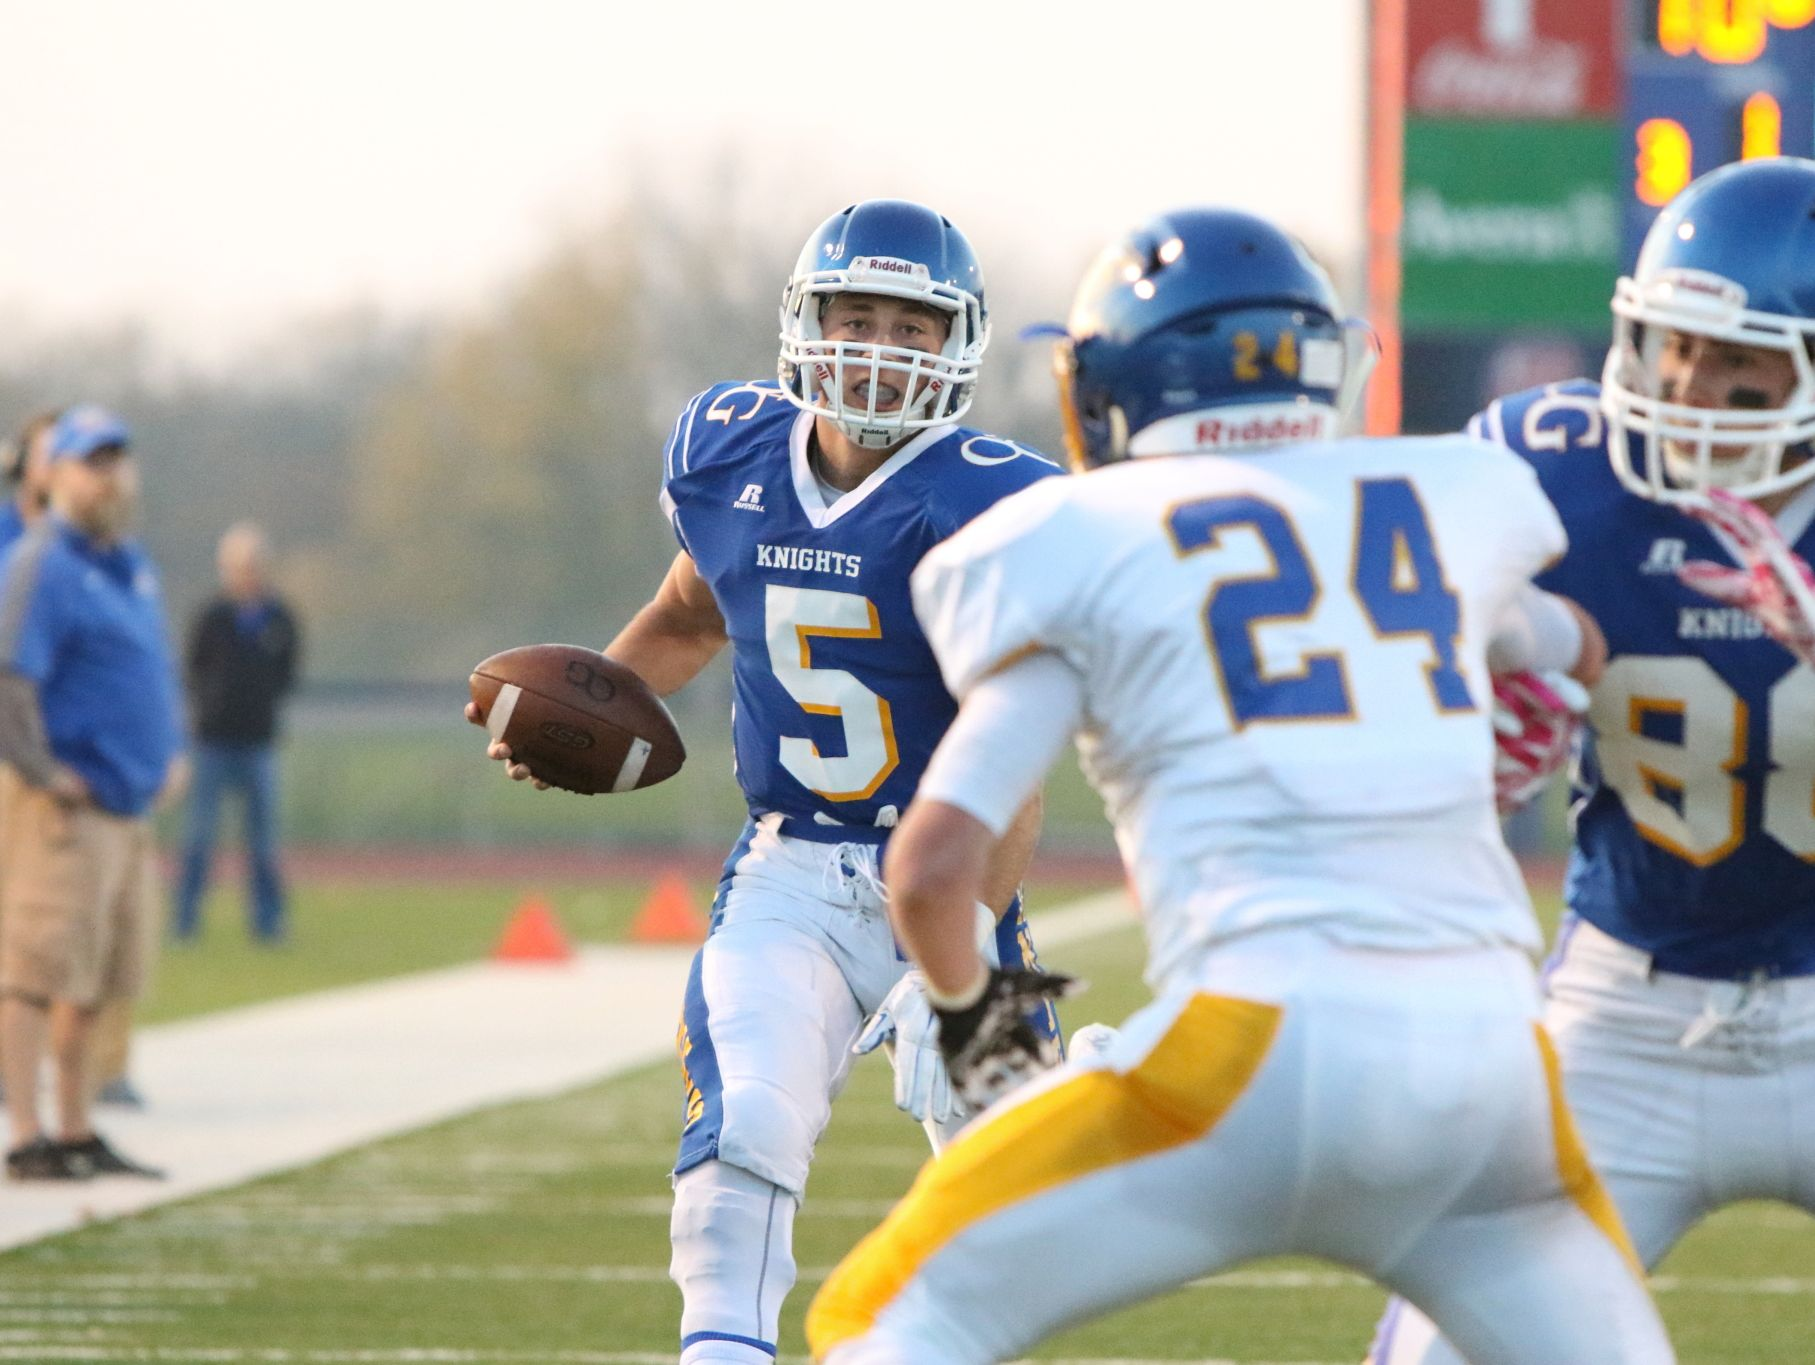 Hunter Thompson (5) of O'Gorman runs behind the block of Brett Sehr (88) during Thursday's game against Aberdeen Central in Sioux Falls.